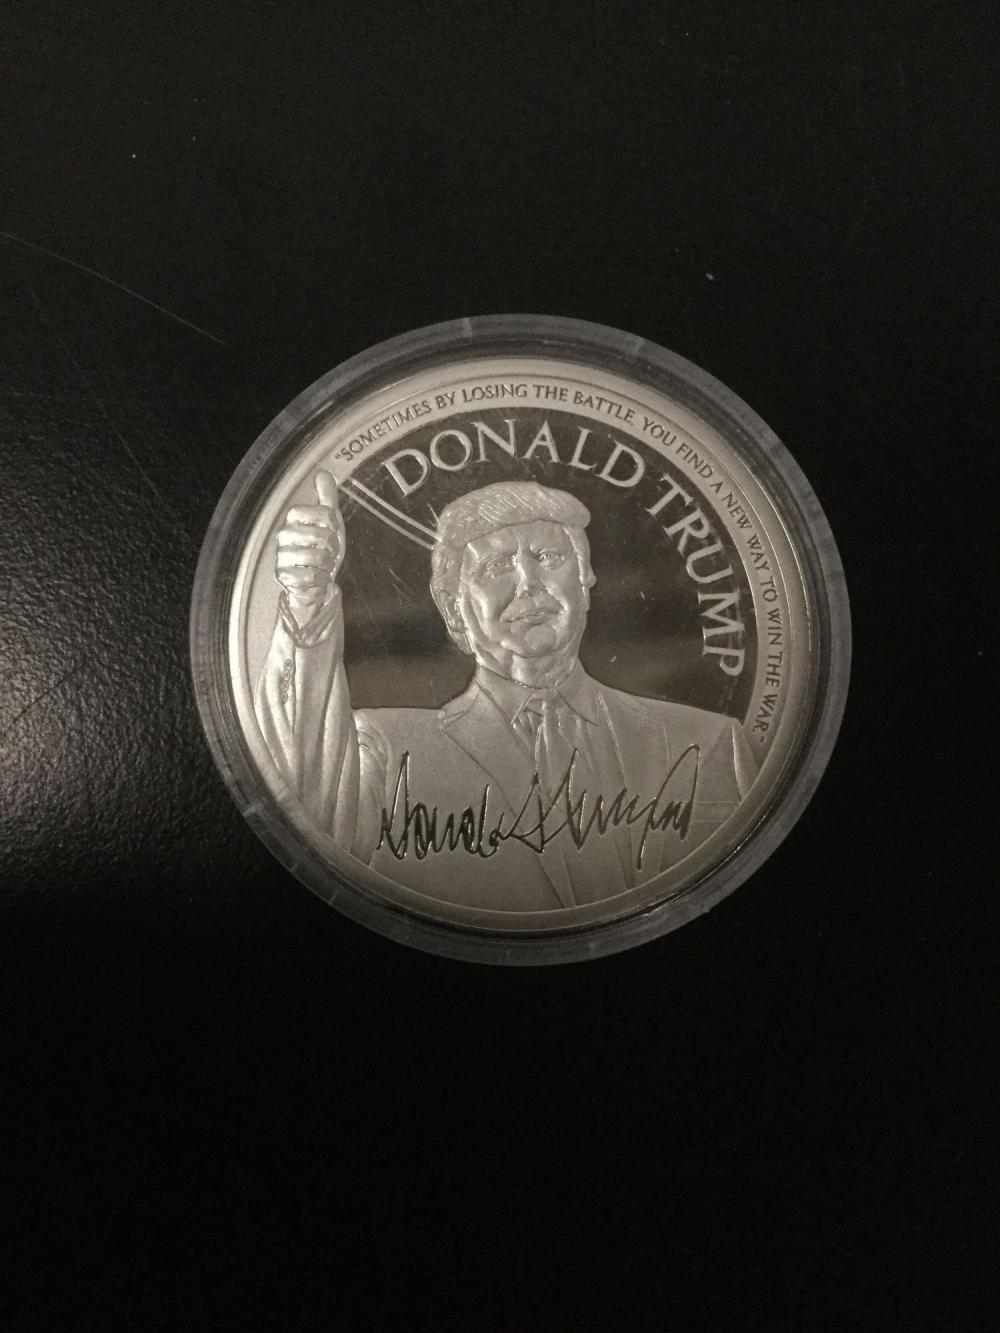 Lot 175: Donald Trump Make America Great Again 1 Oz Silver Round Coin